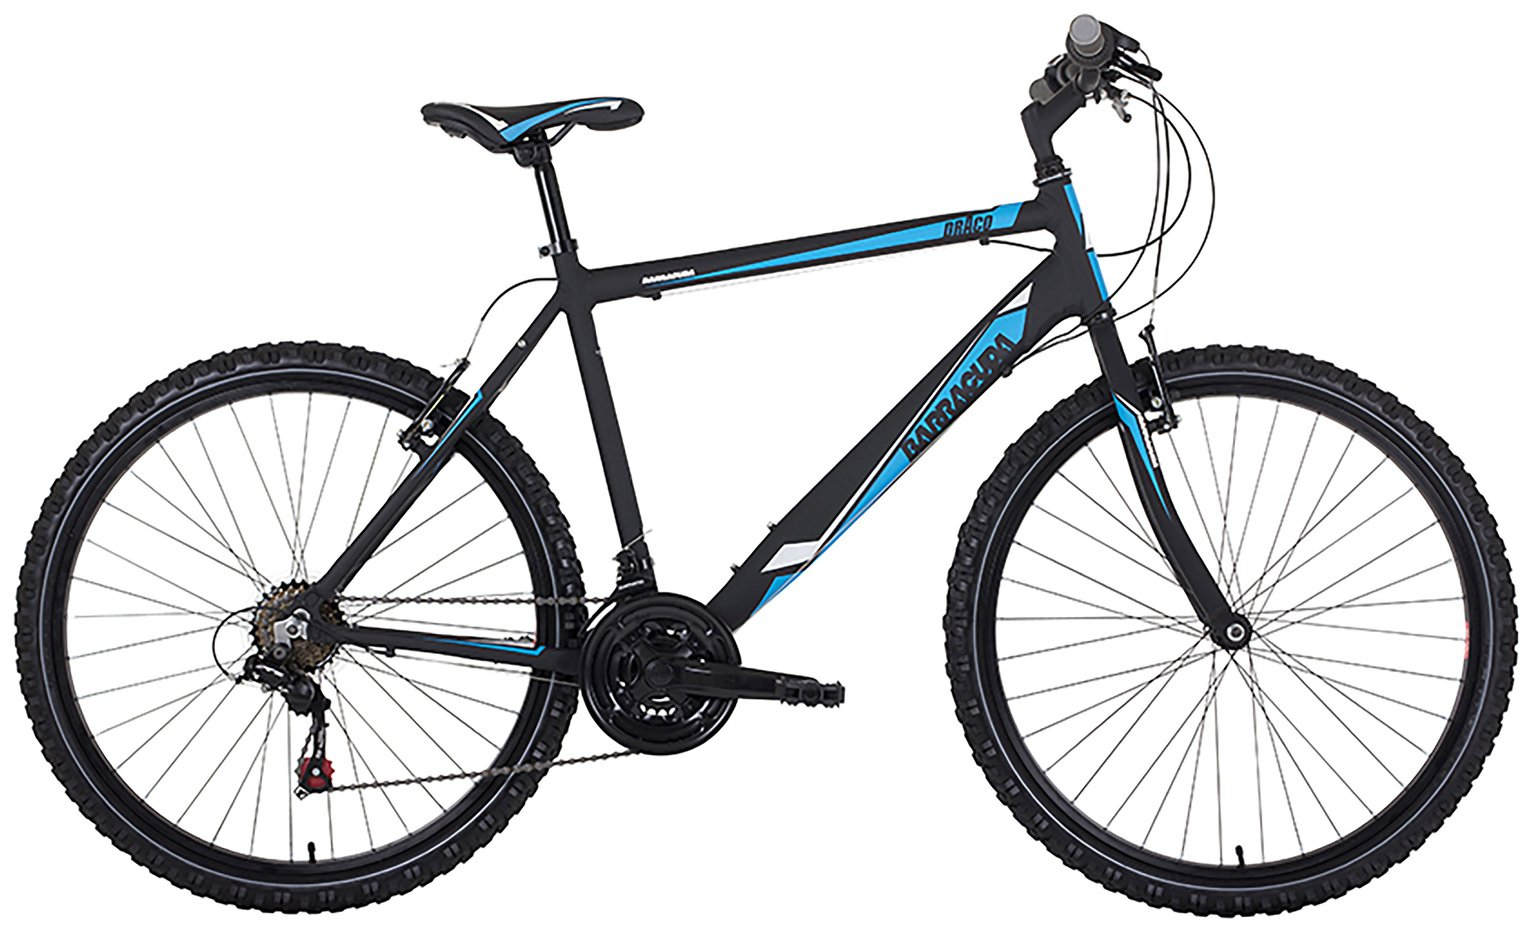 Image of Barracuda Draco 1 16 Inch Black & Blue Mountain Bike - Mens.